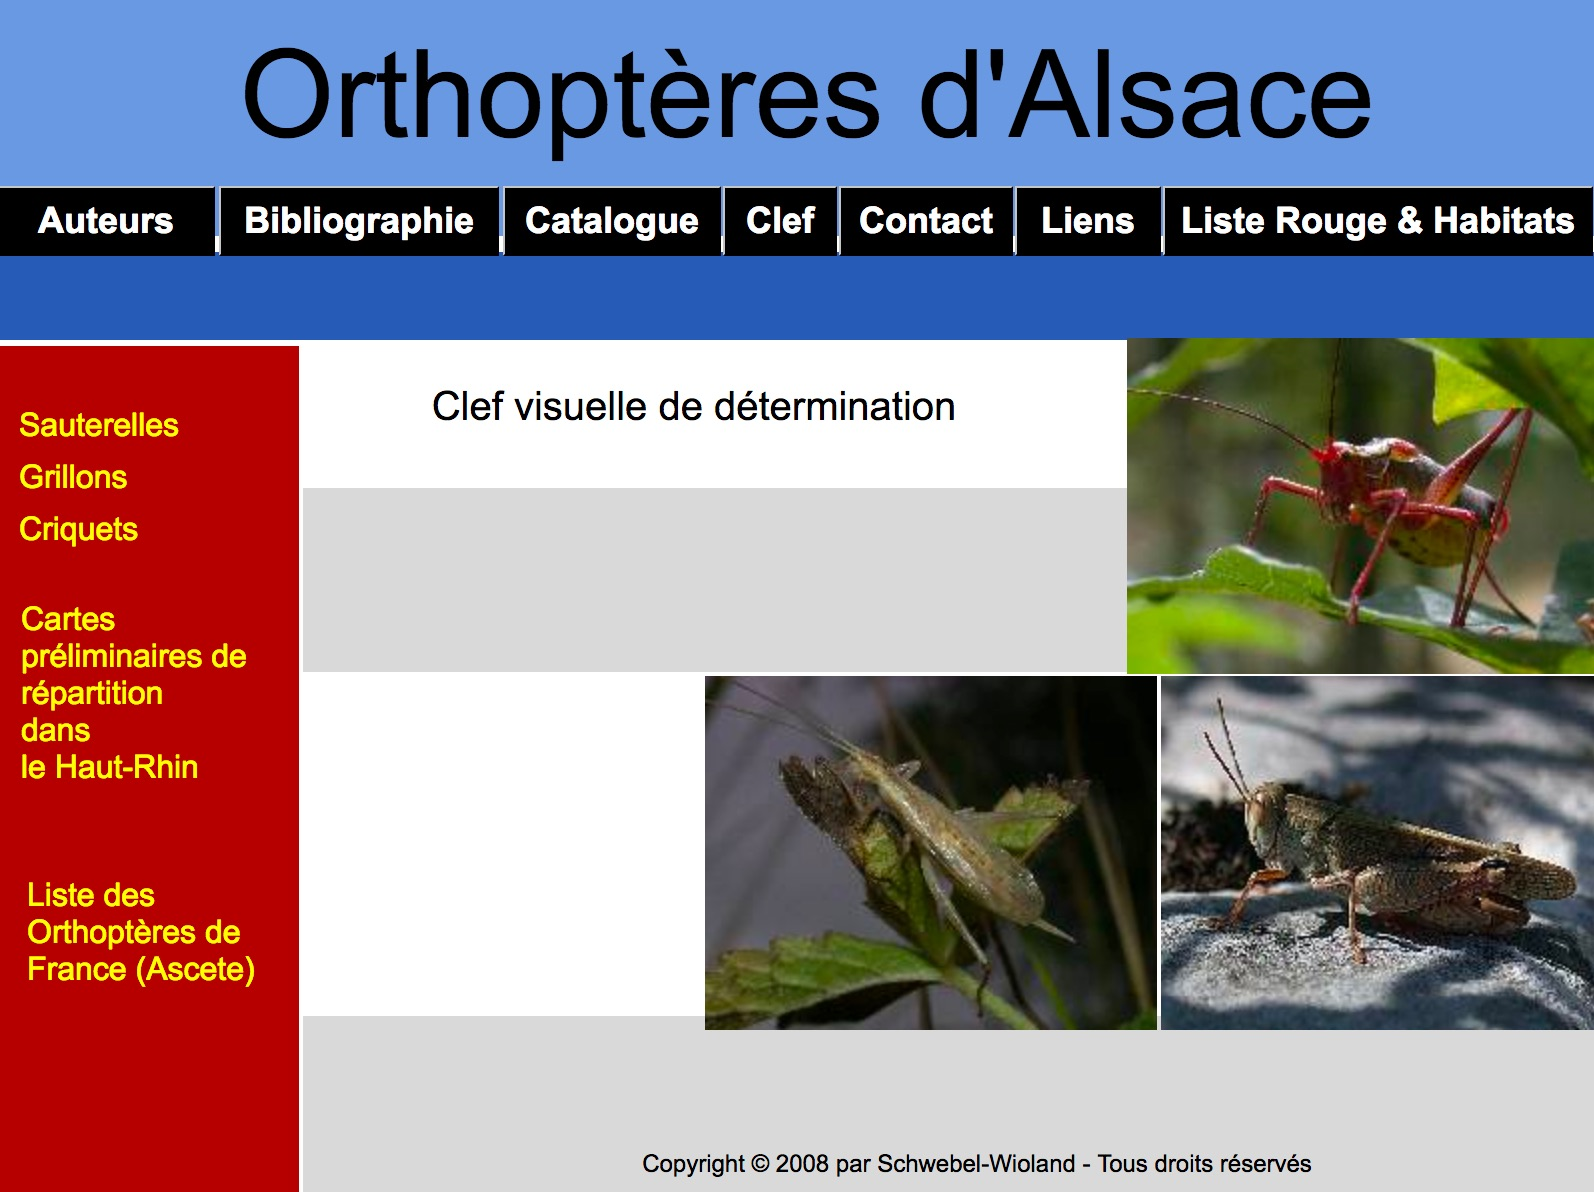 https://cdnfiles1.biolovision.net/www.faune-alsace.org/userfiles/Insectes/ORTHOPTERA/sitewebLS.jpg